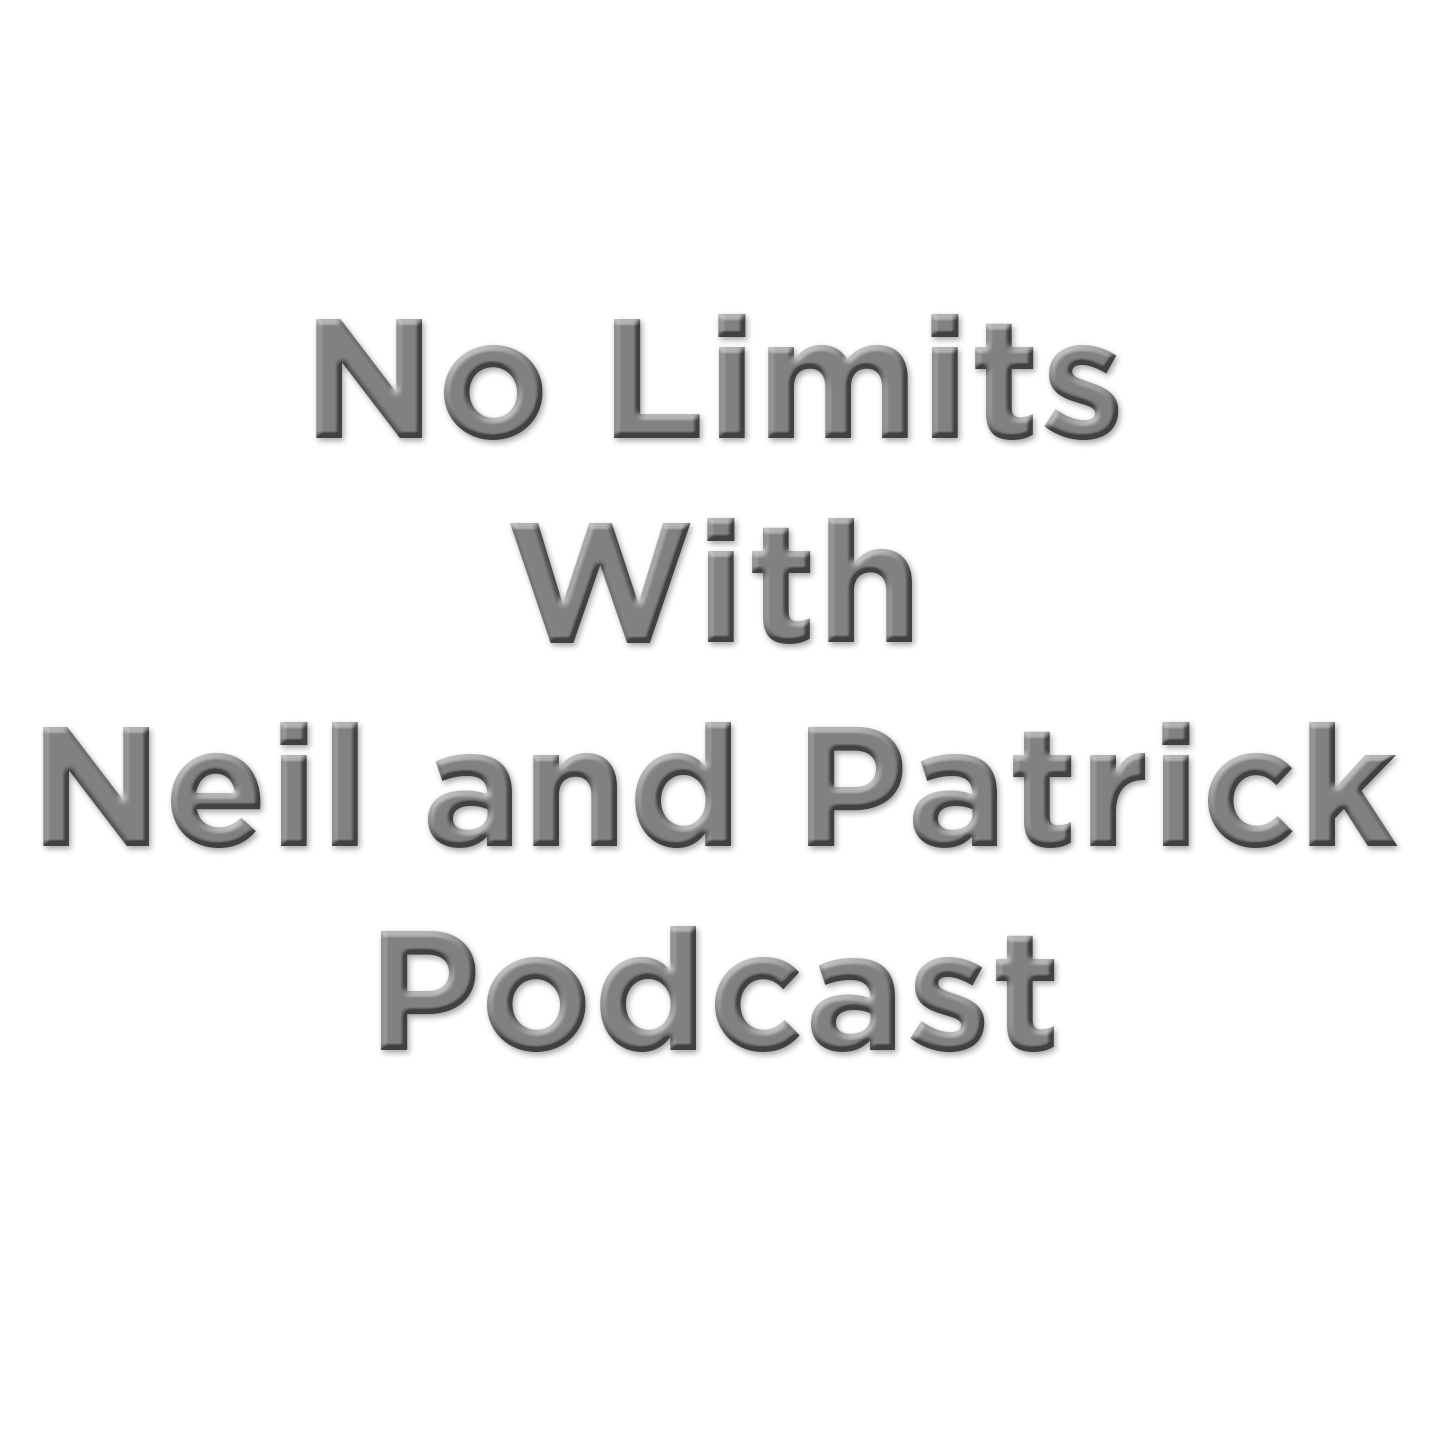 Neil mitchell podcast serial